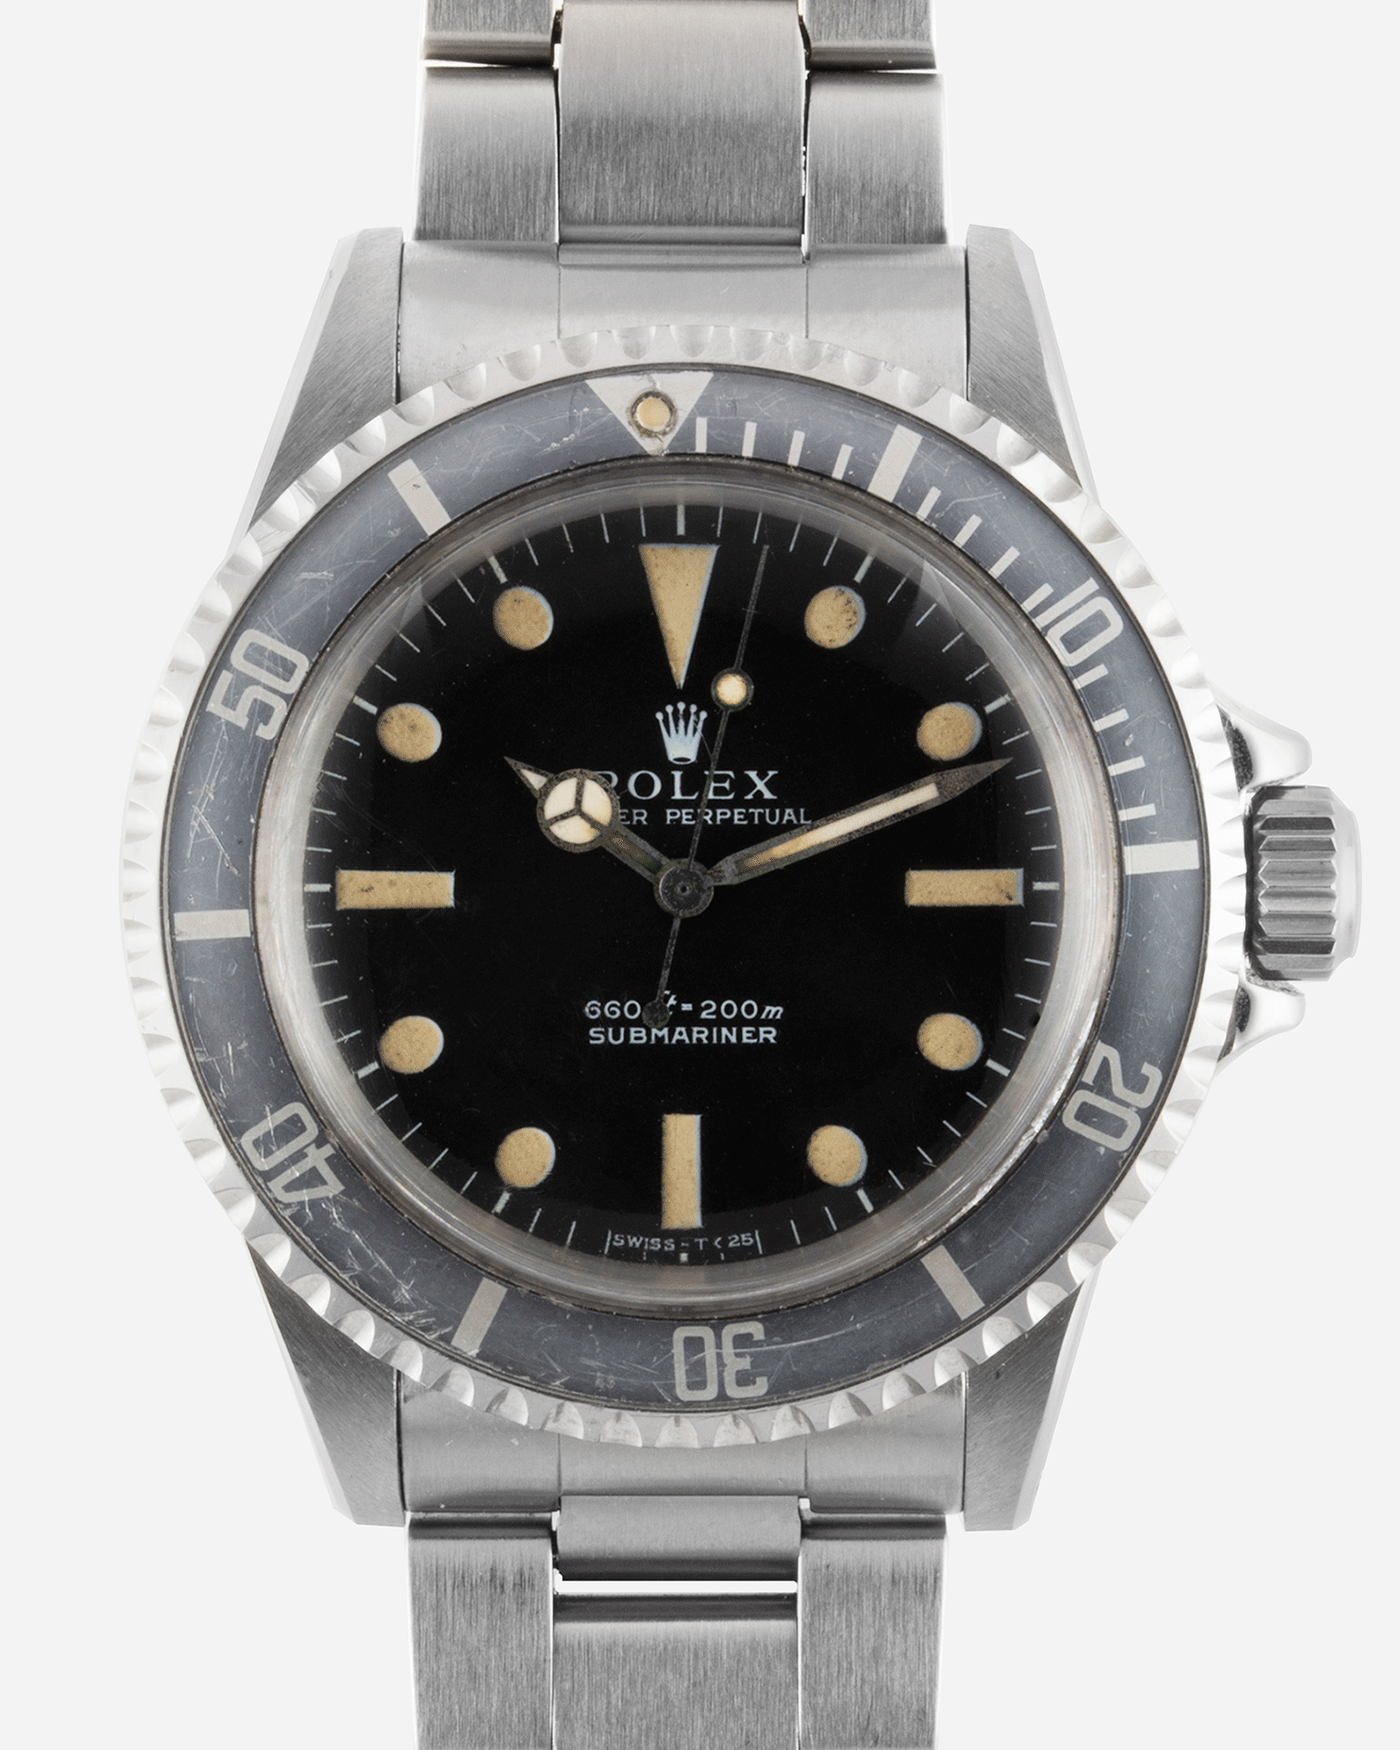 Rolex Submariner 5513 Non Serif Vintage Sport Watch | S.Song Vintage Watches For Sale